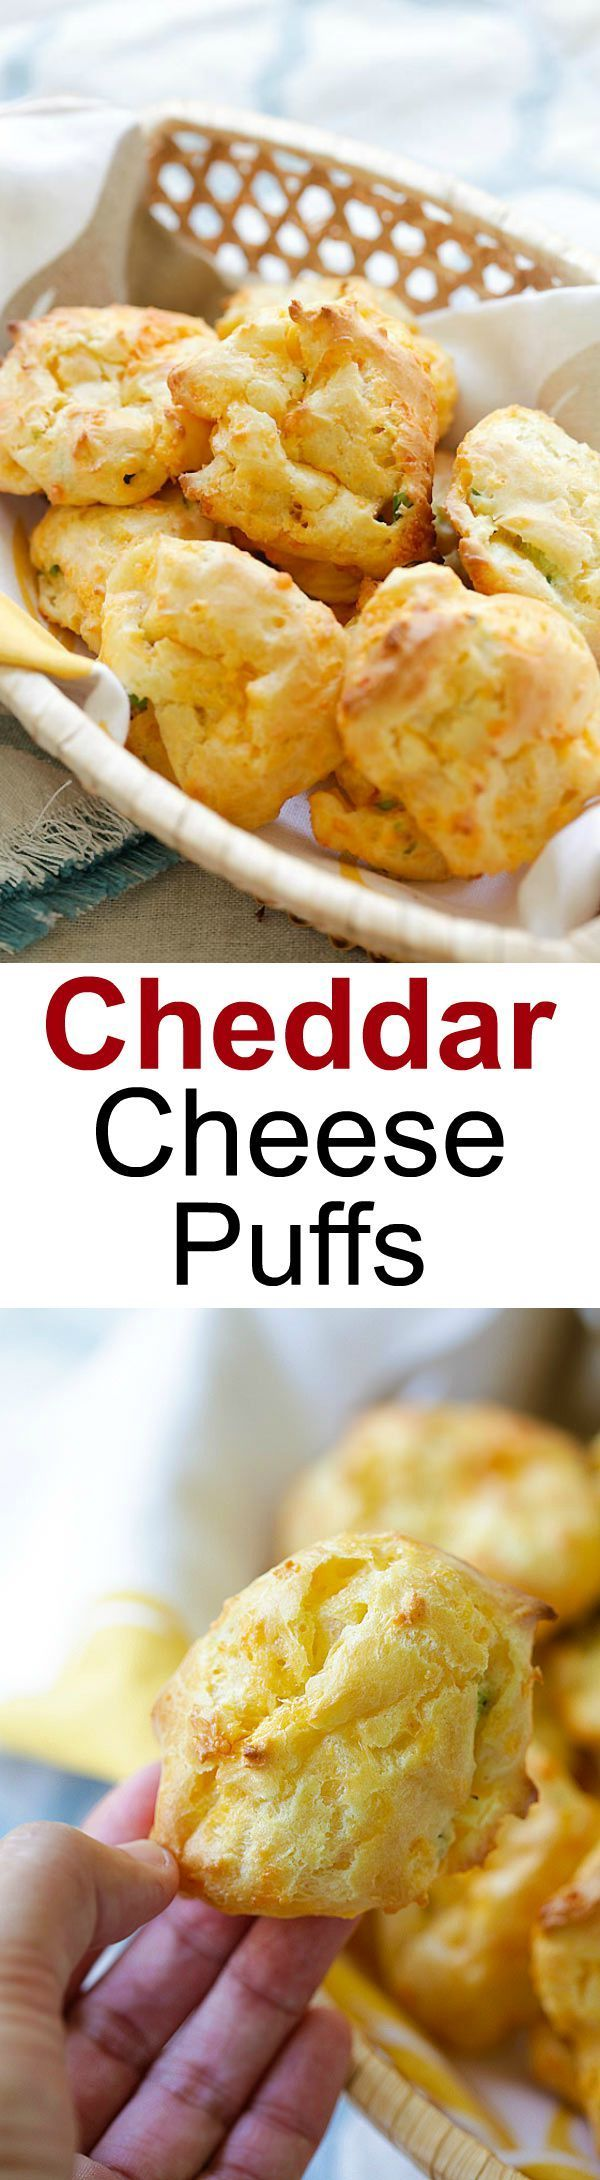 how to make cheddar cheese shapes